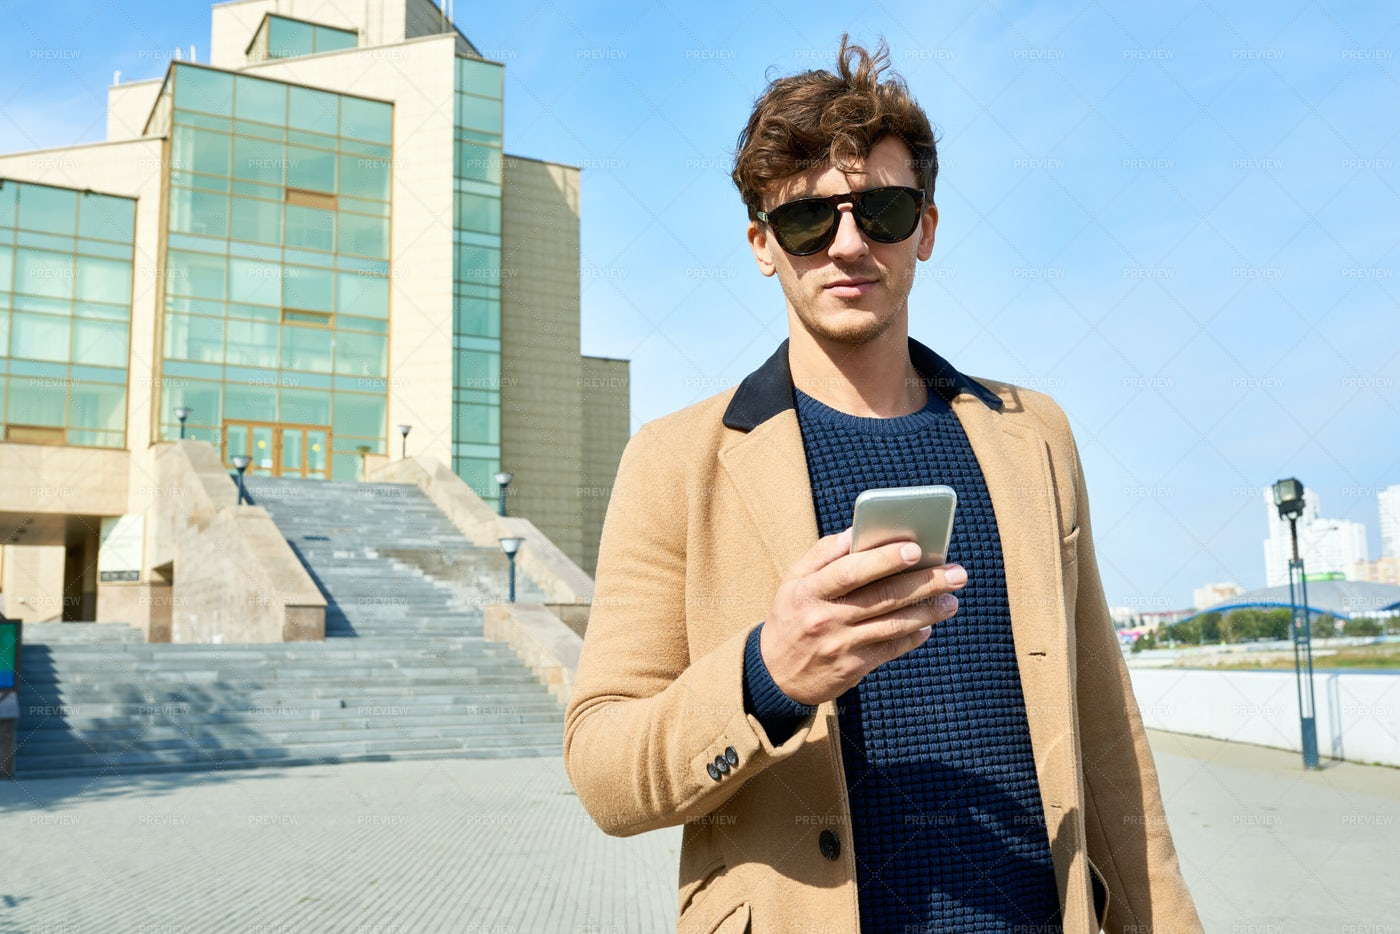 Handsome Young Man With Smartphone...: Stock Photos